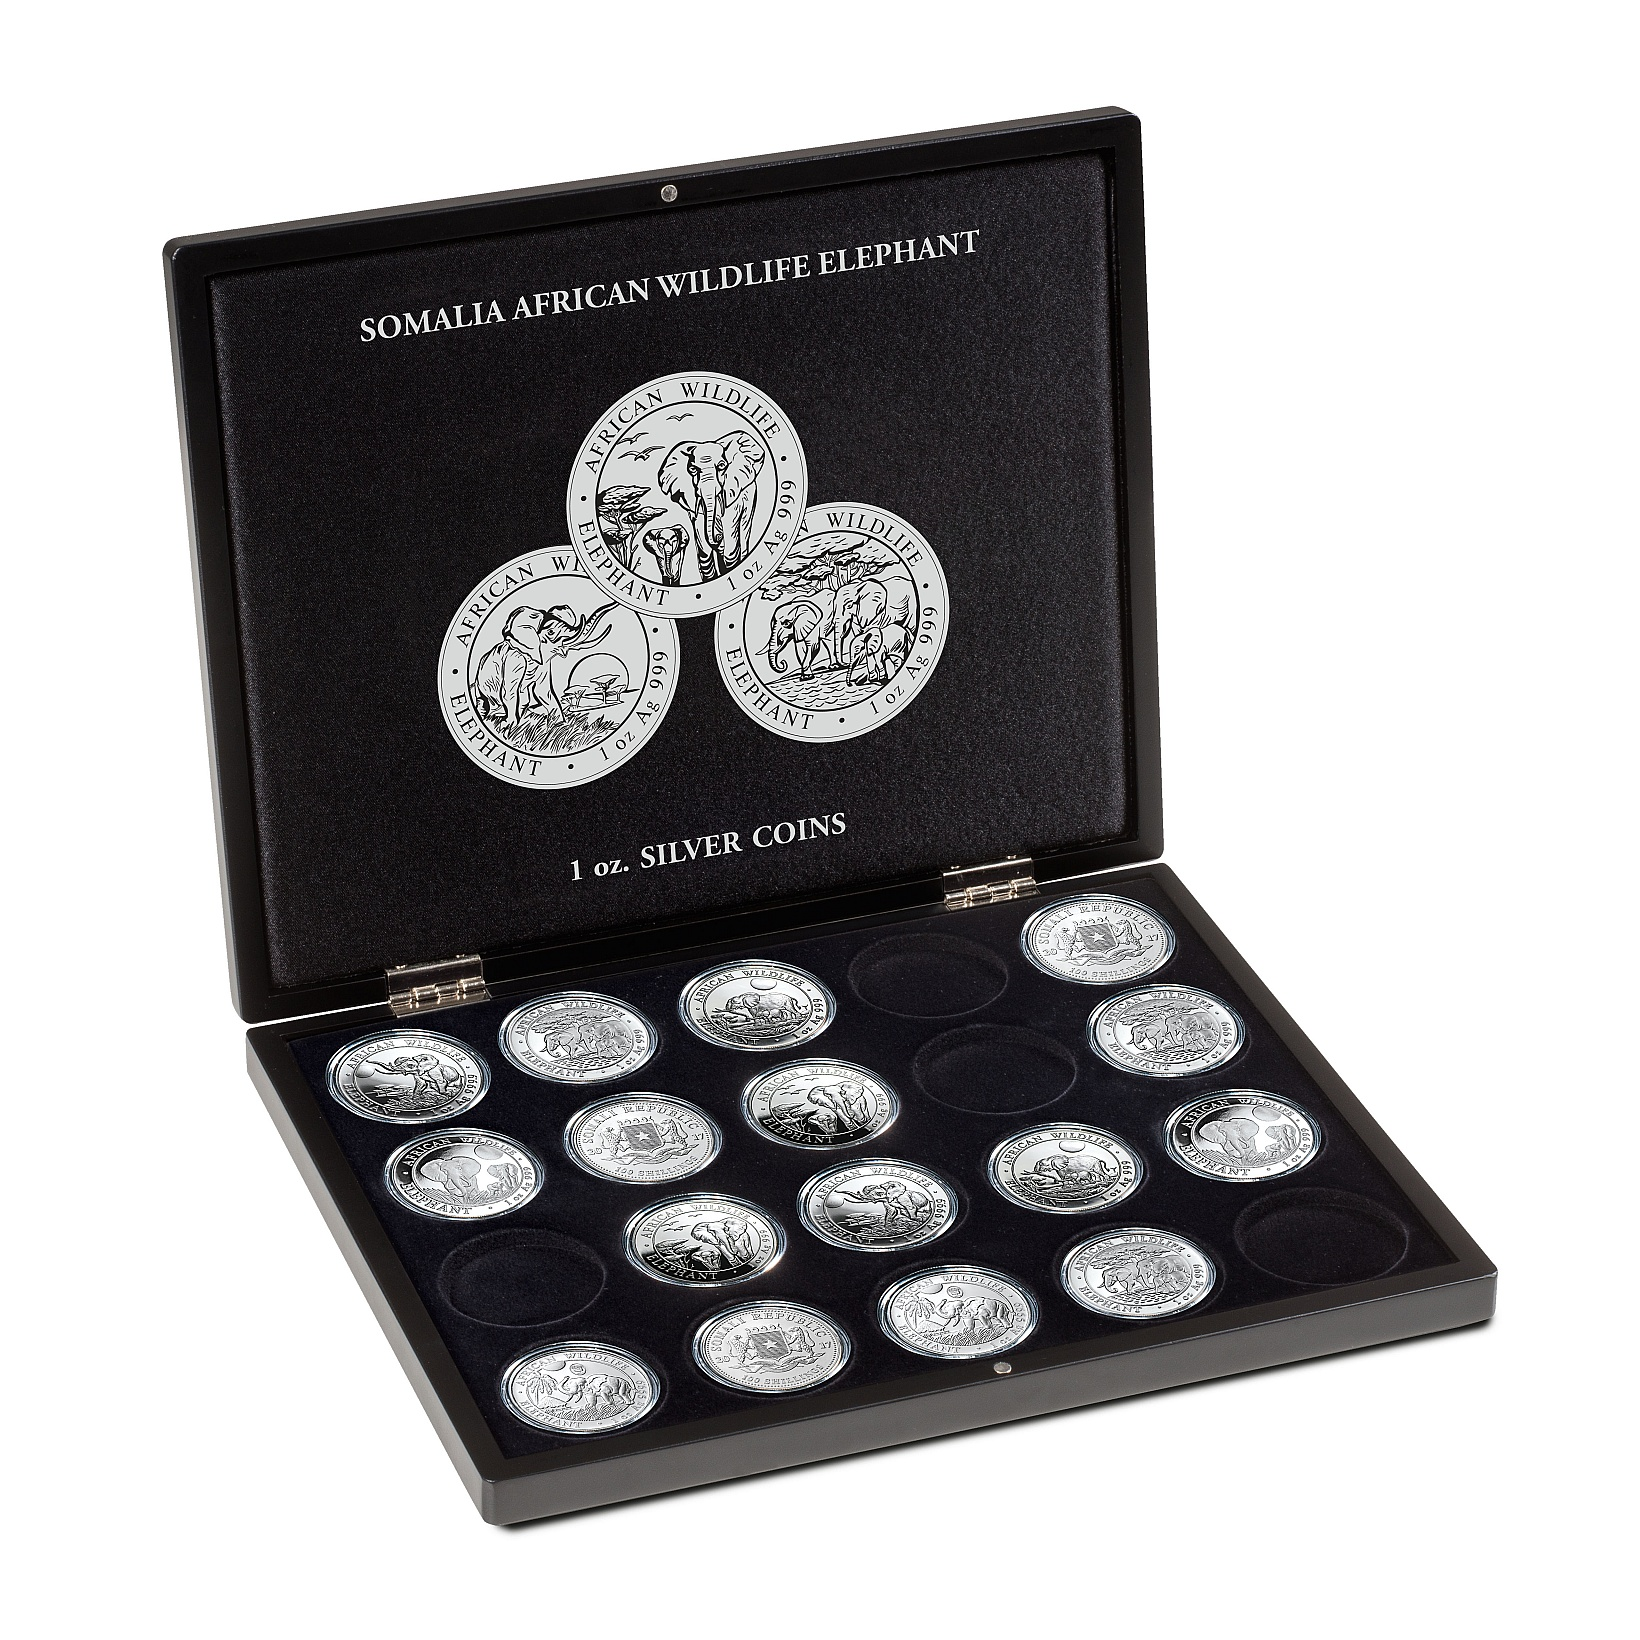 presentation-case-for-20-somalia-elephant-silver-coins-1-oz-in-capsules-2